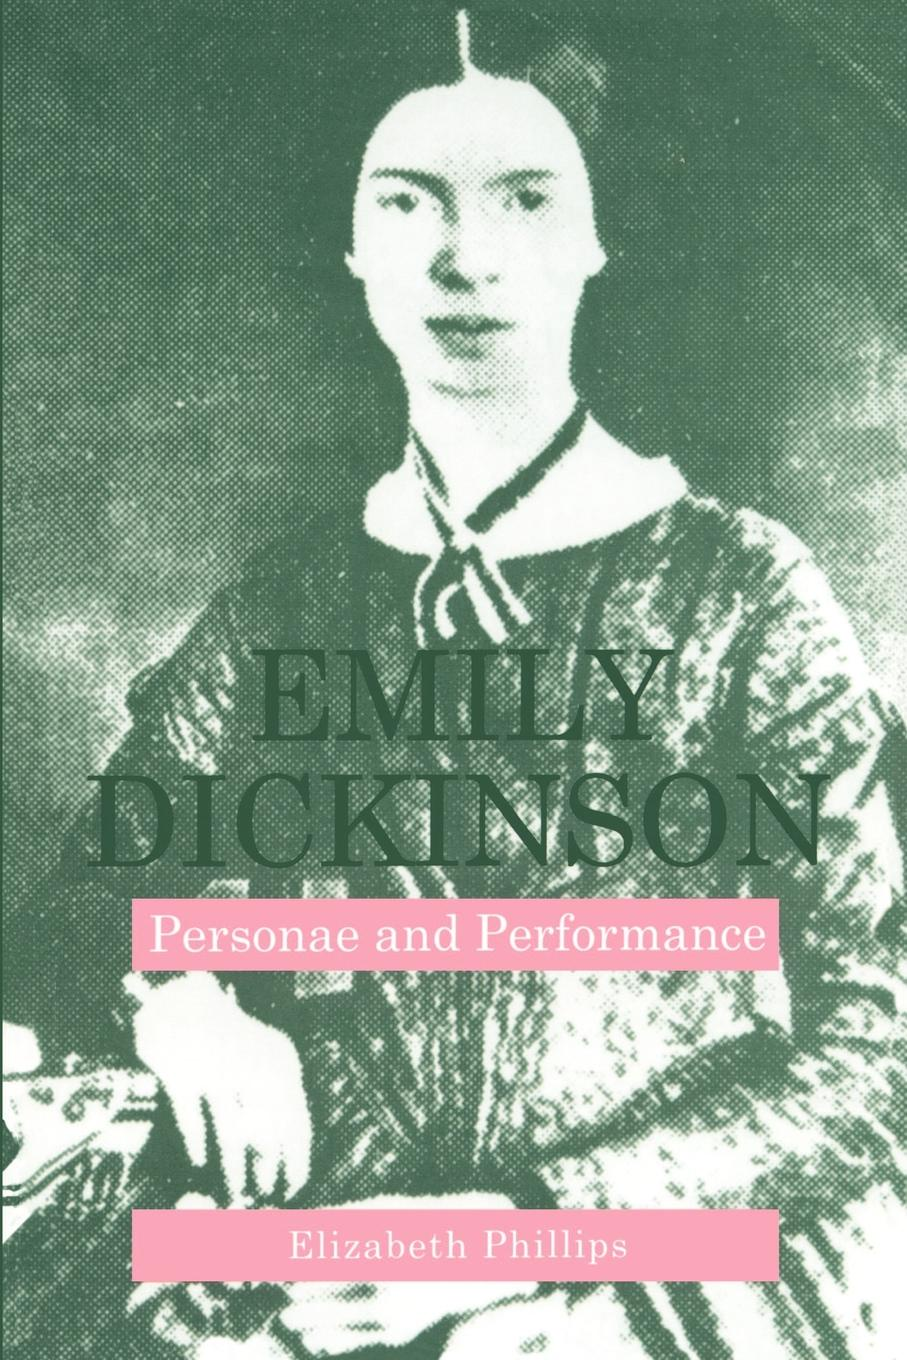 Elizabeth Phillips Emily Dickinson. Personae and Performance